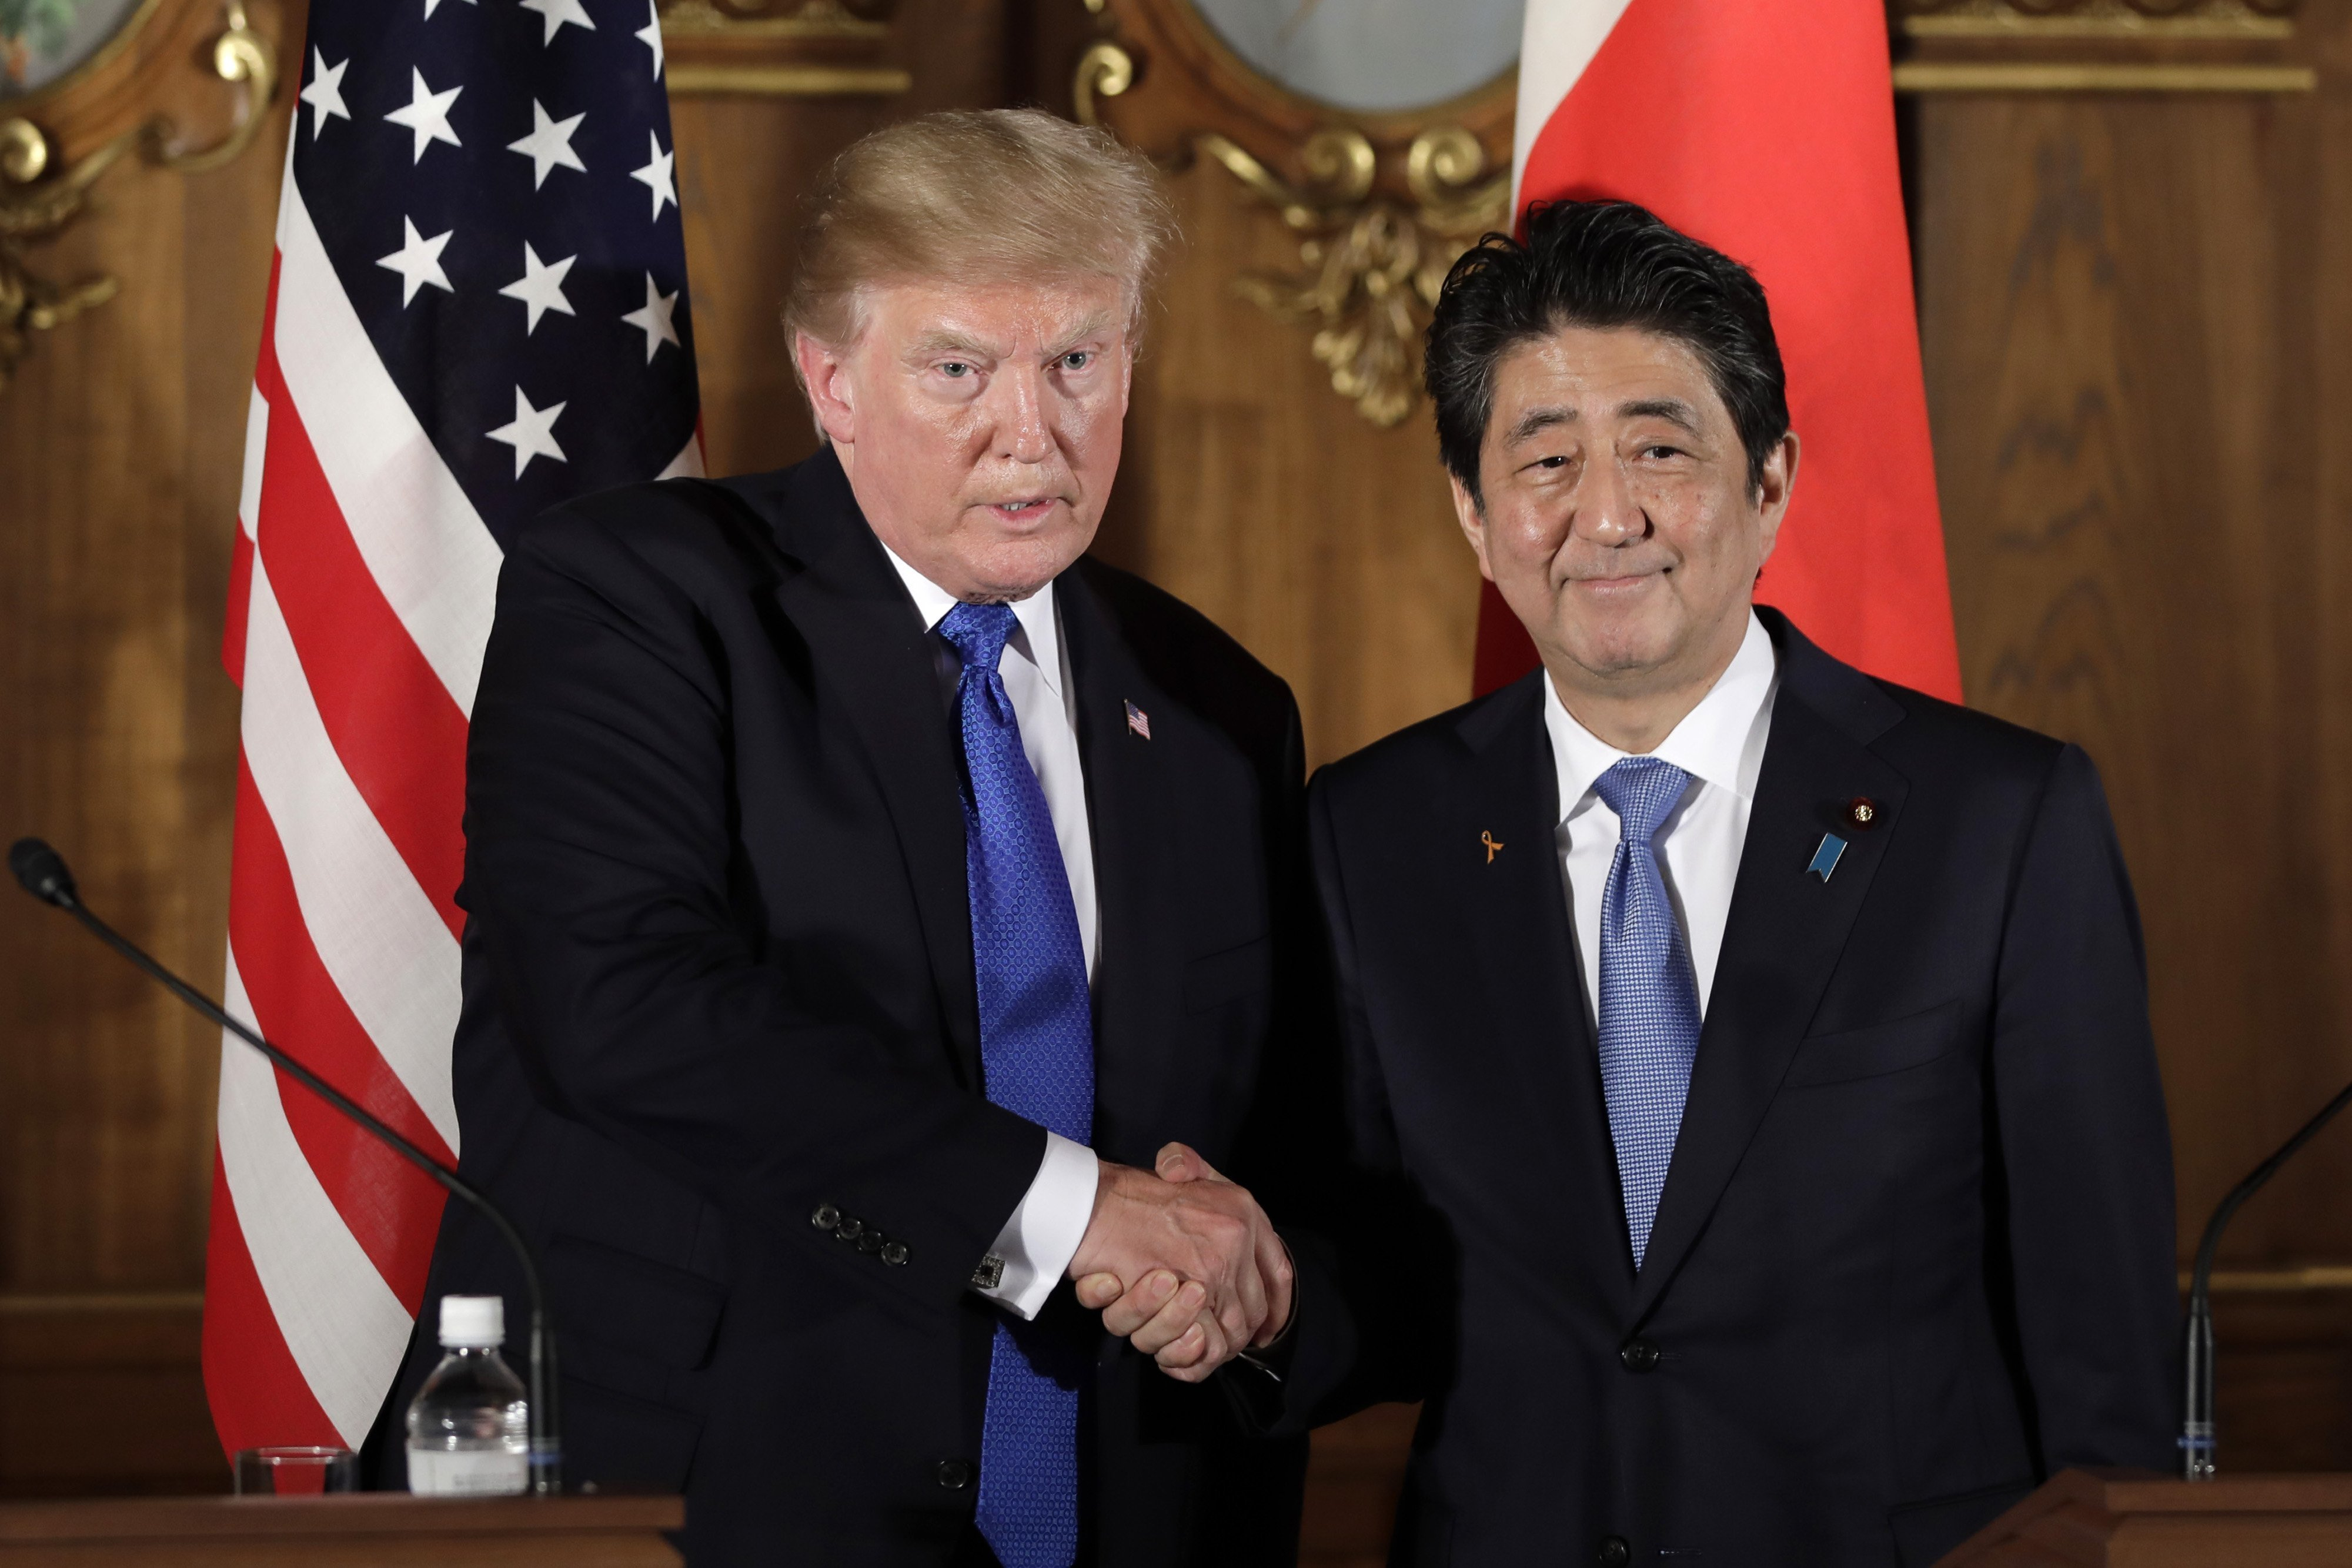 Trump addresses Japan over trade gap, expects good things from North Korea